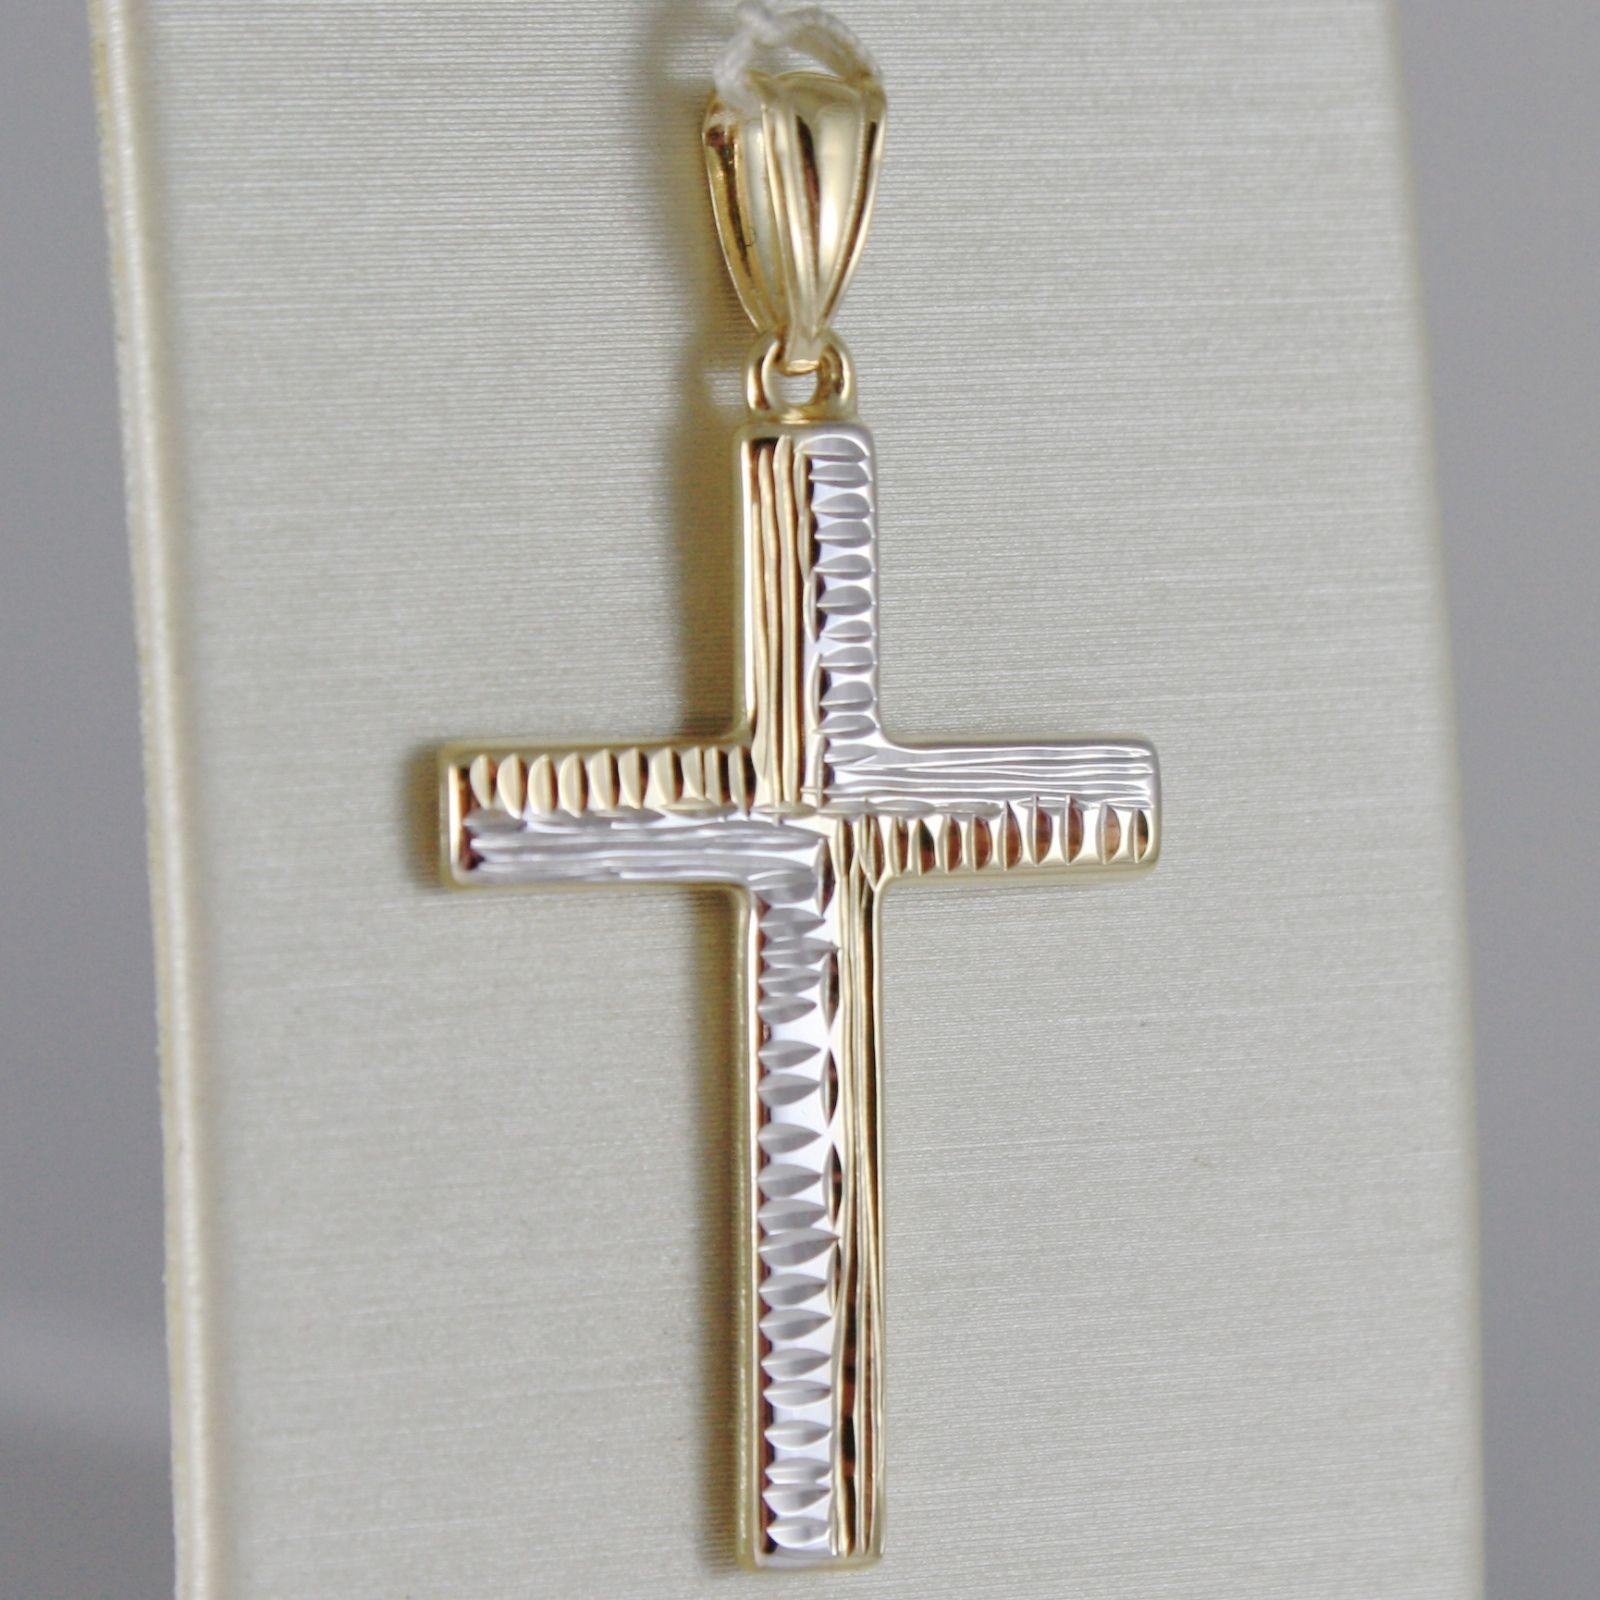 18K WHITE YELLOW GOLD CROSS FINELY WORKED, SQUARED, SMOOTH, MADE IN ITALY